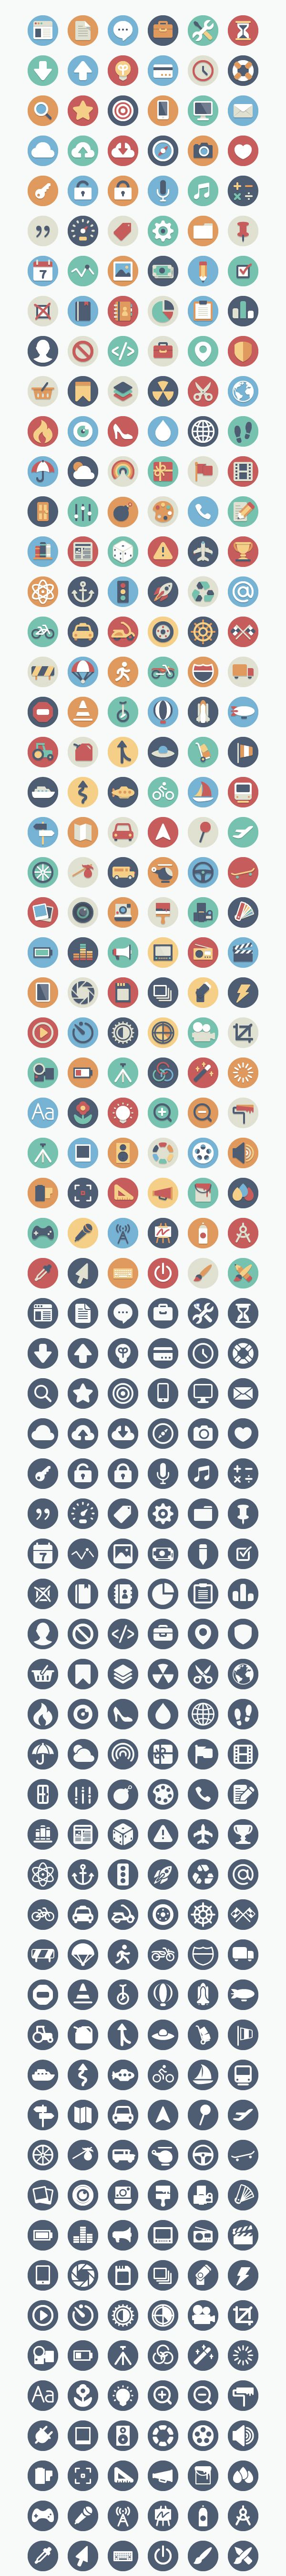 Collection of flat icons for your next data visualisation tasks.